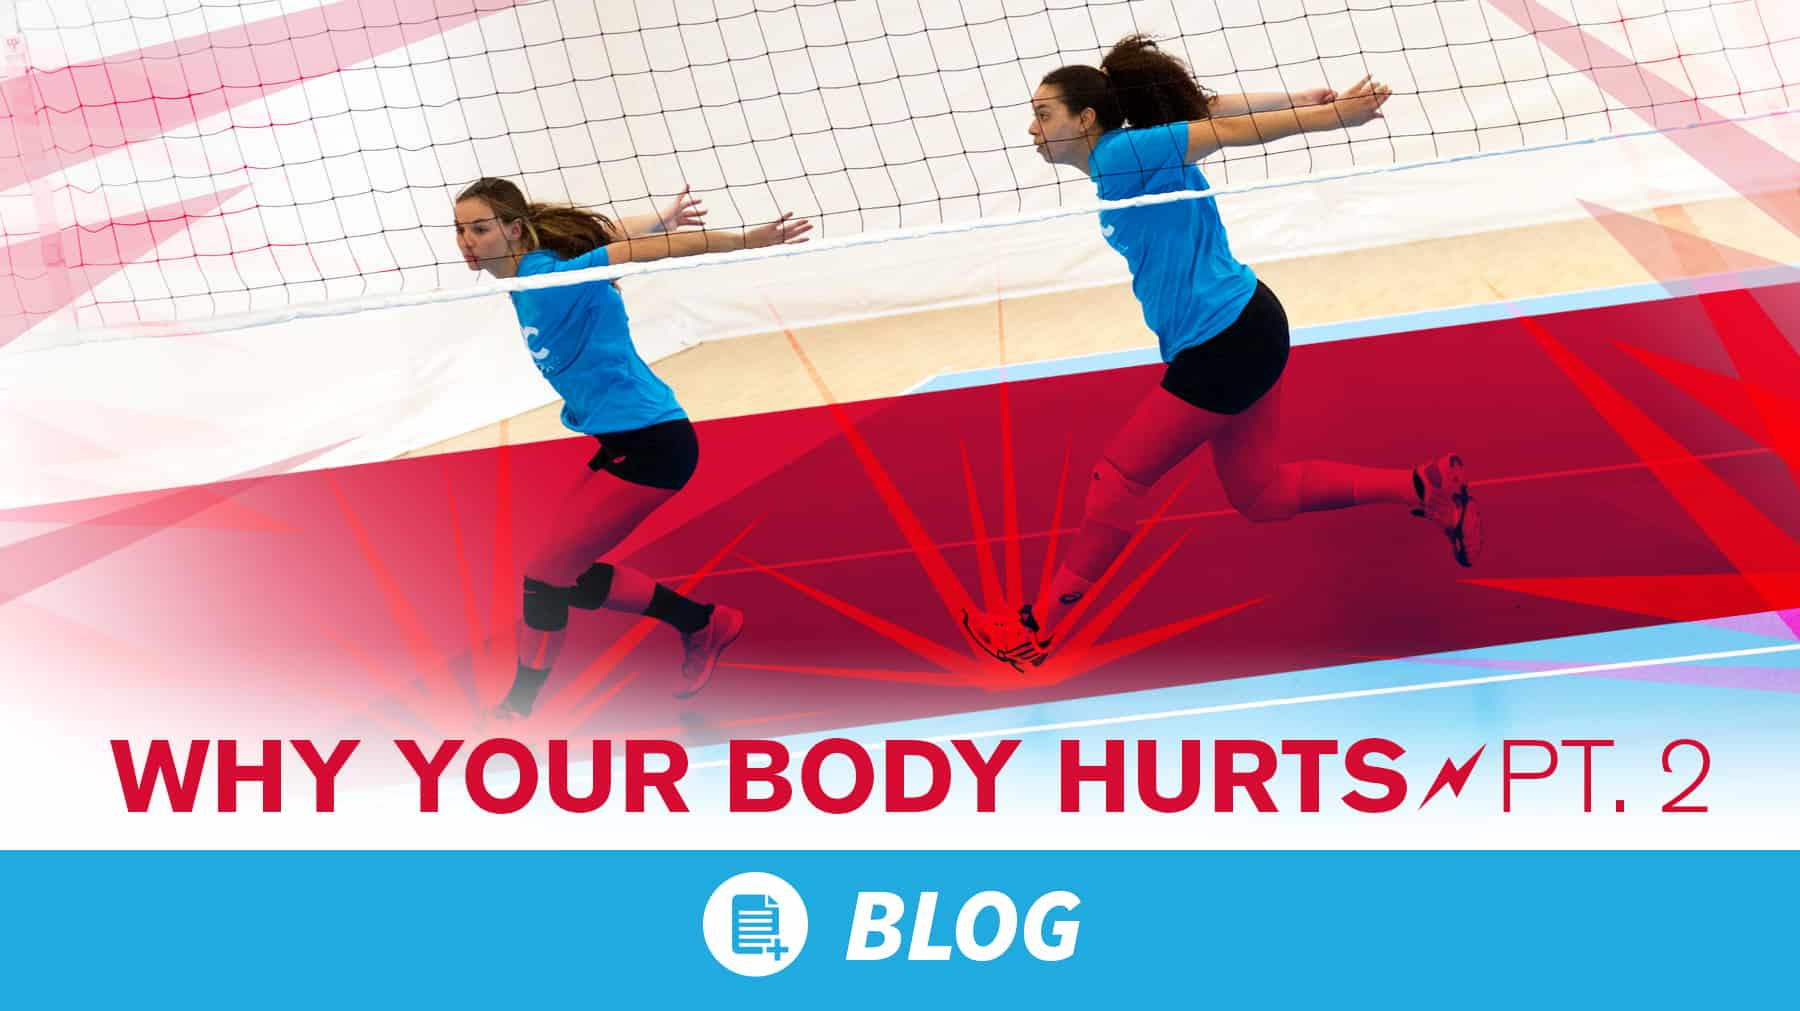 Rethinking Why Your Body Hurts Part 2